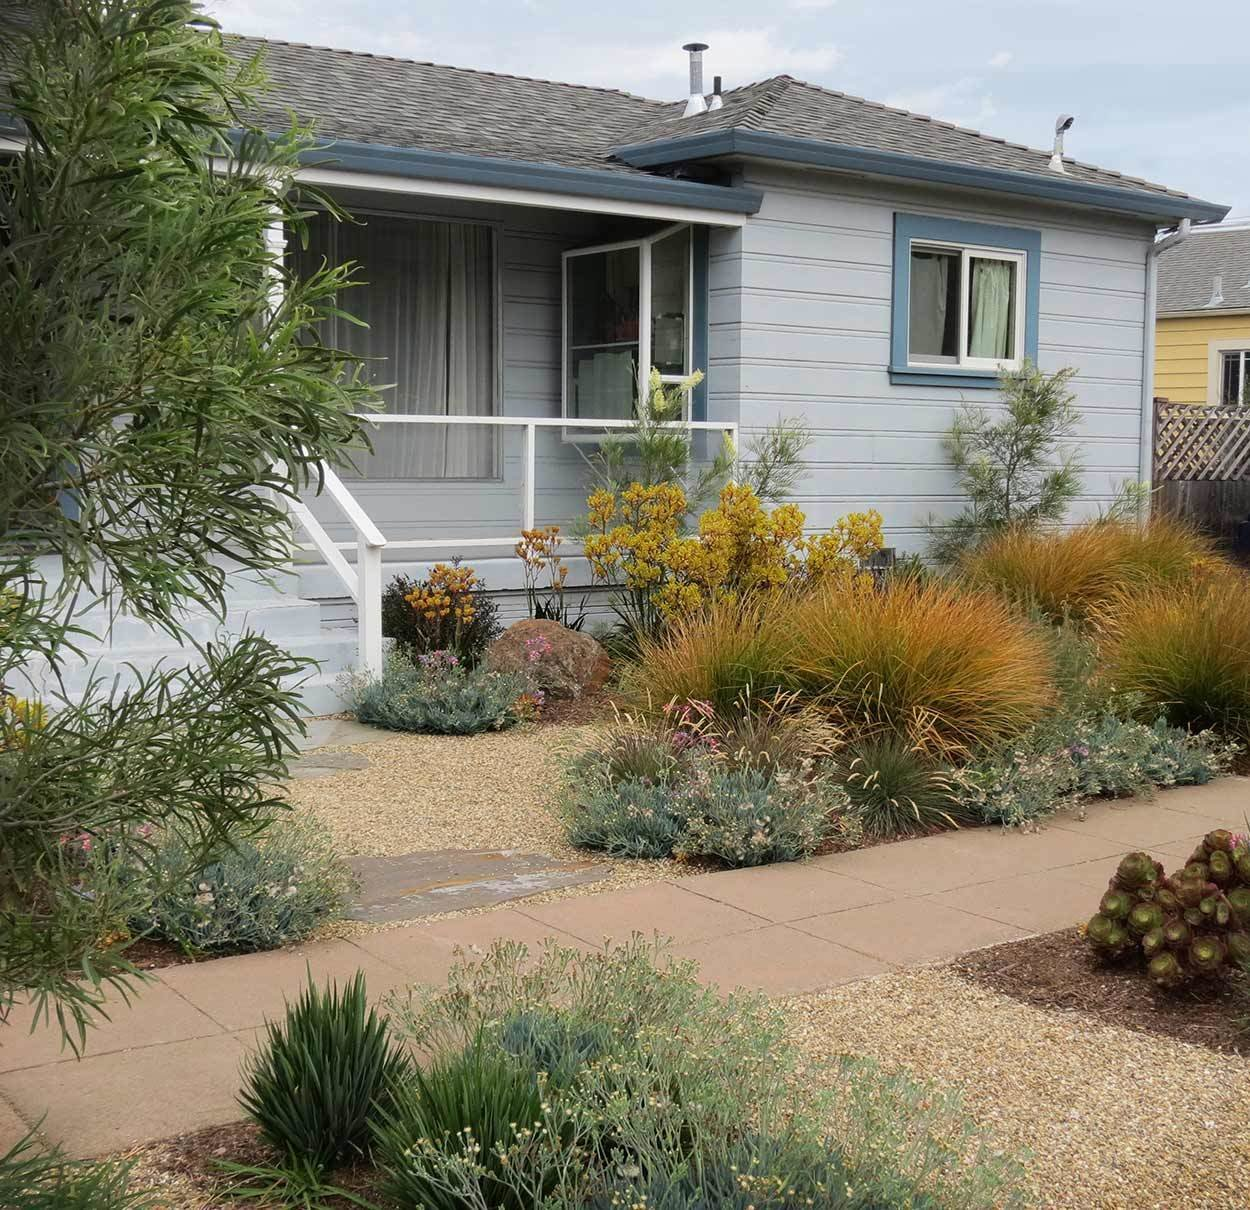 Decomposed Granite  Photo 9 of 11 in 10 Modern Gardens That Freshen Up Traditional Homes